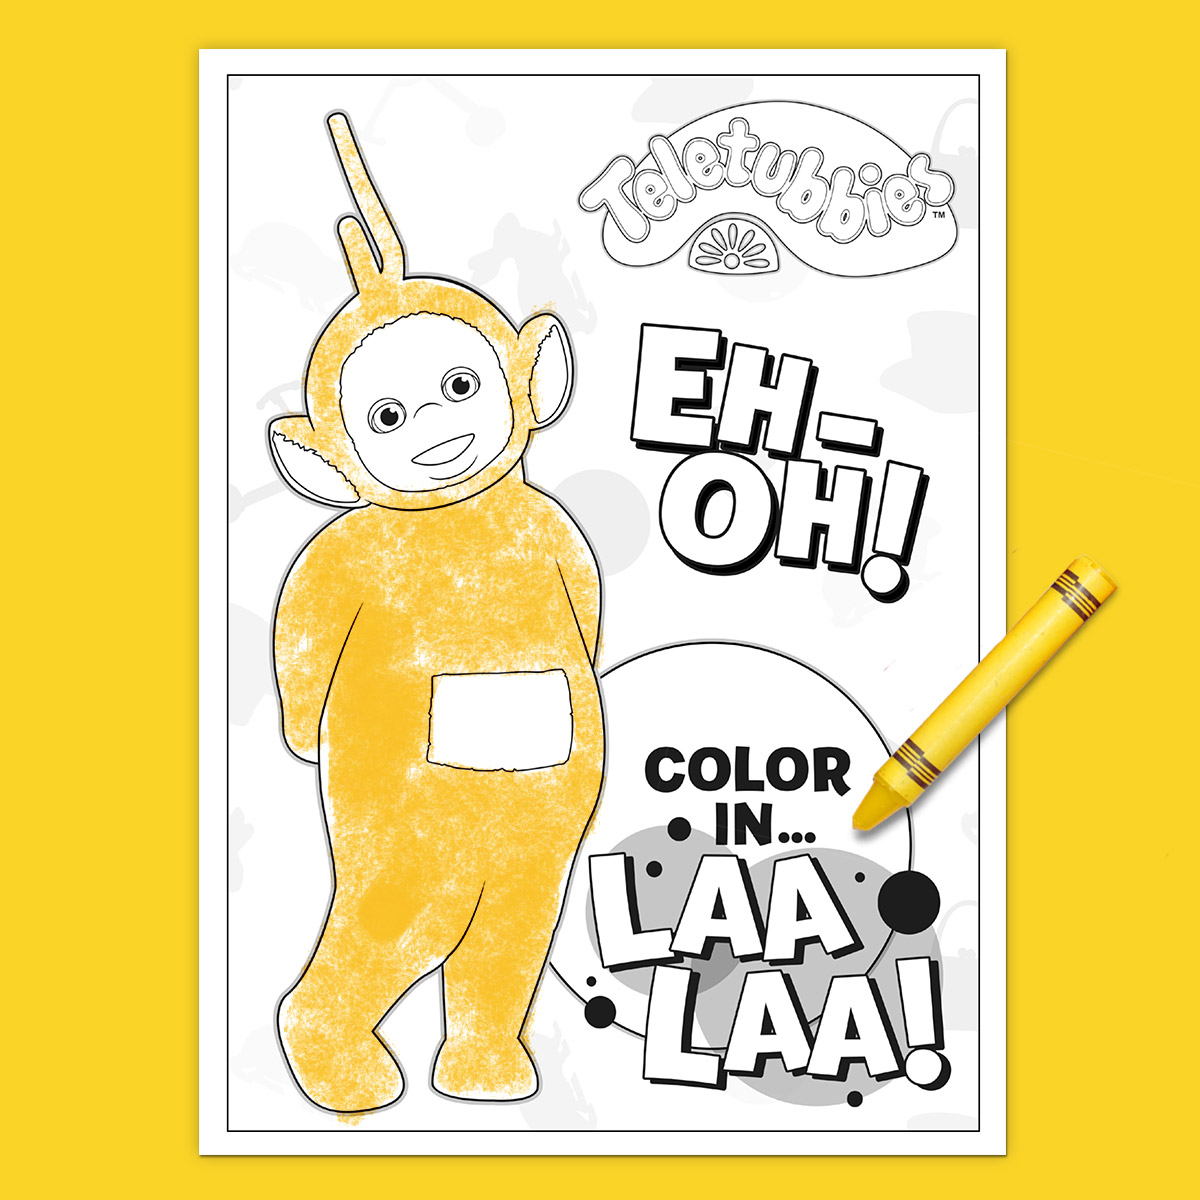 Teletubbies coloring page laa laa